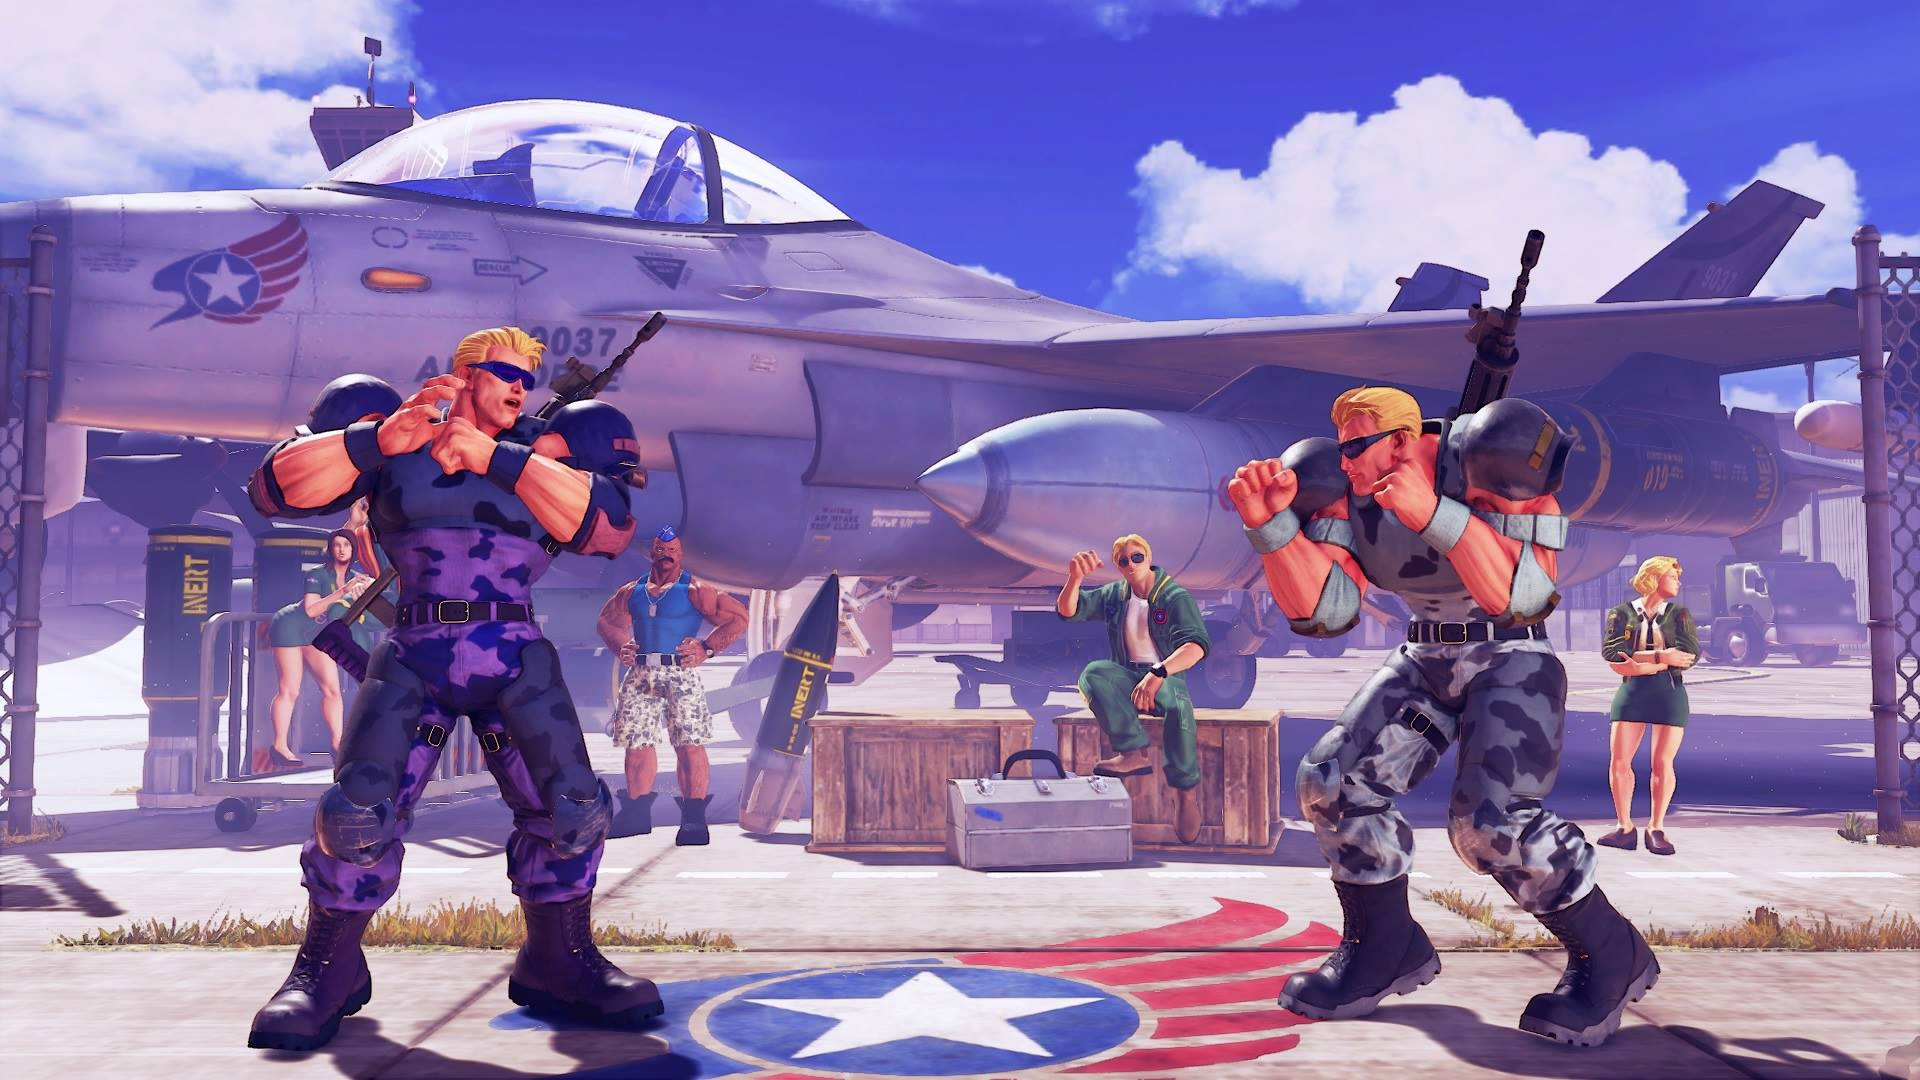 Guile's Nameless Solider colors 2 out of 5 image gallery